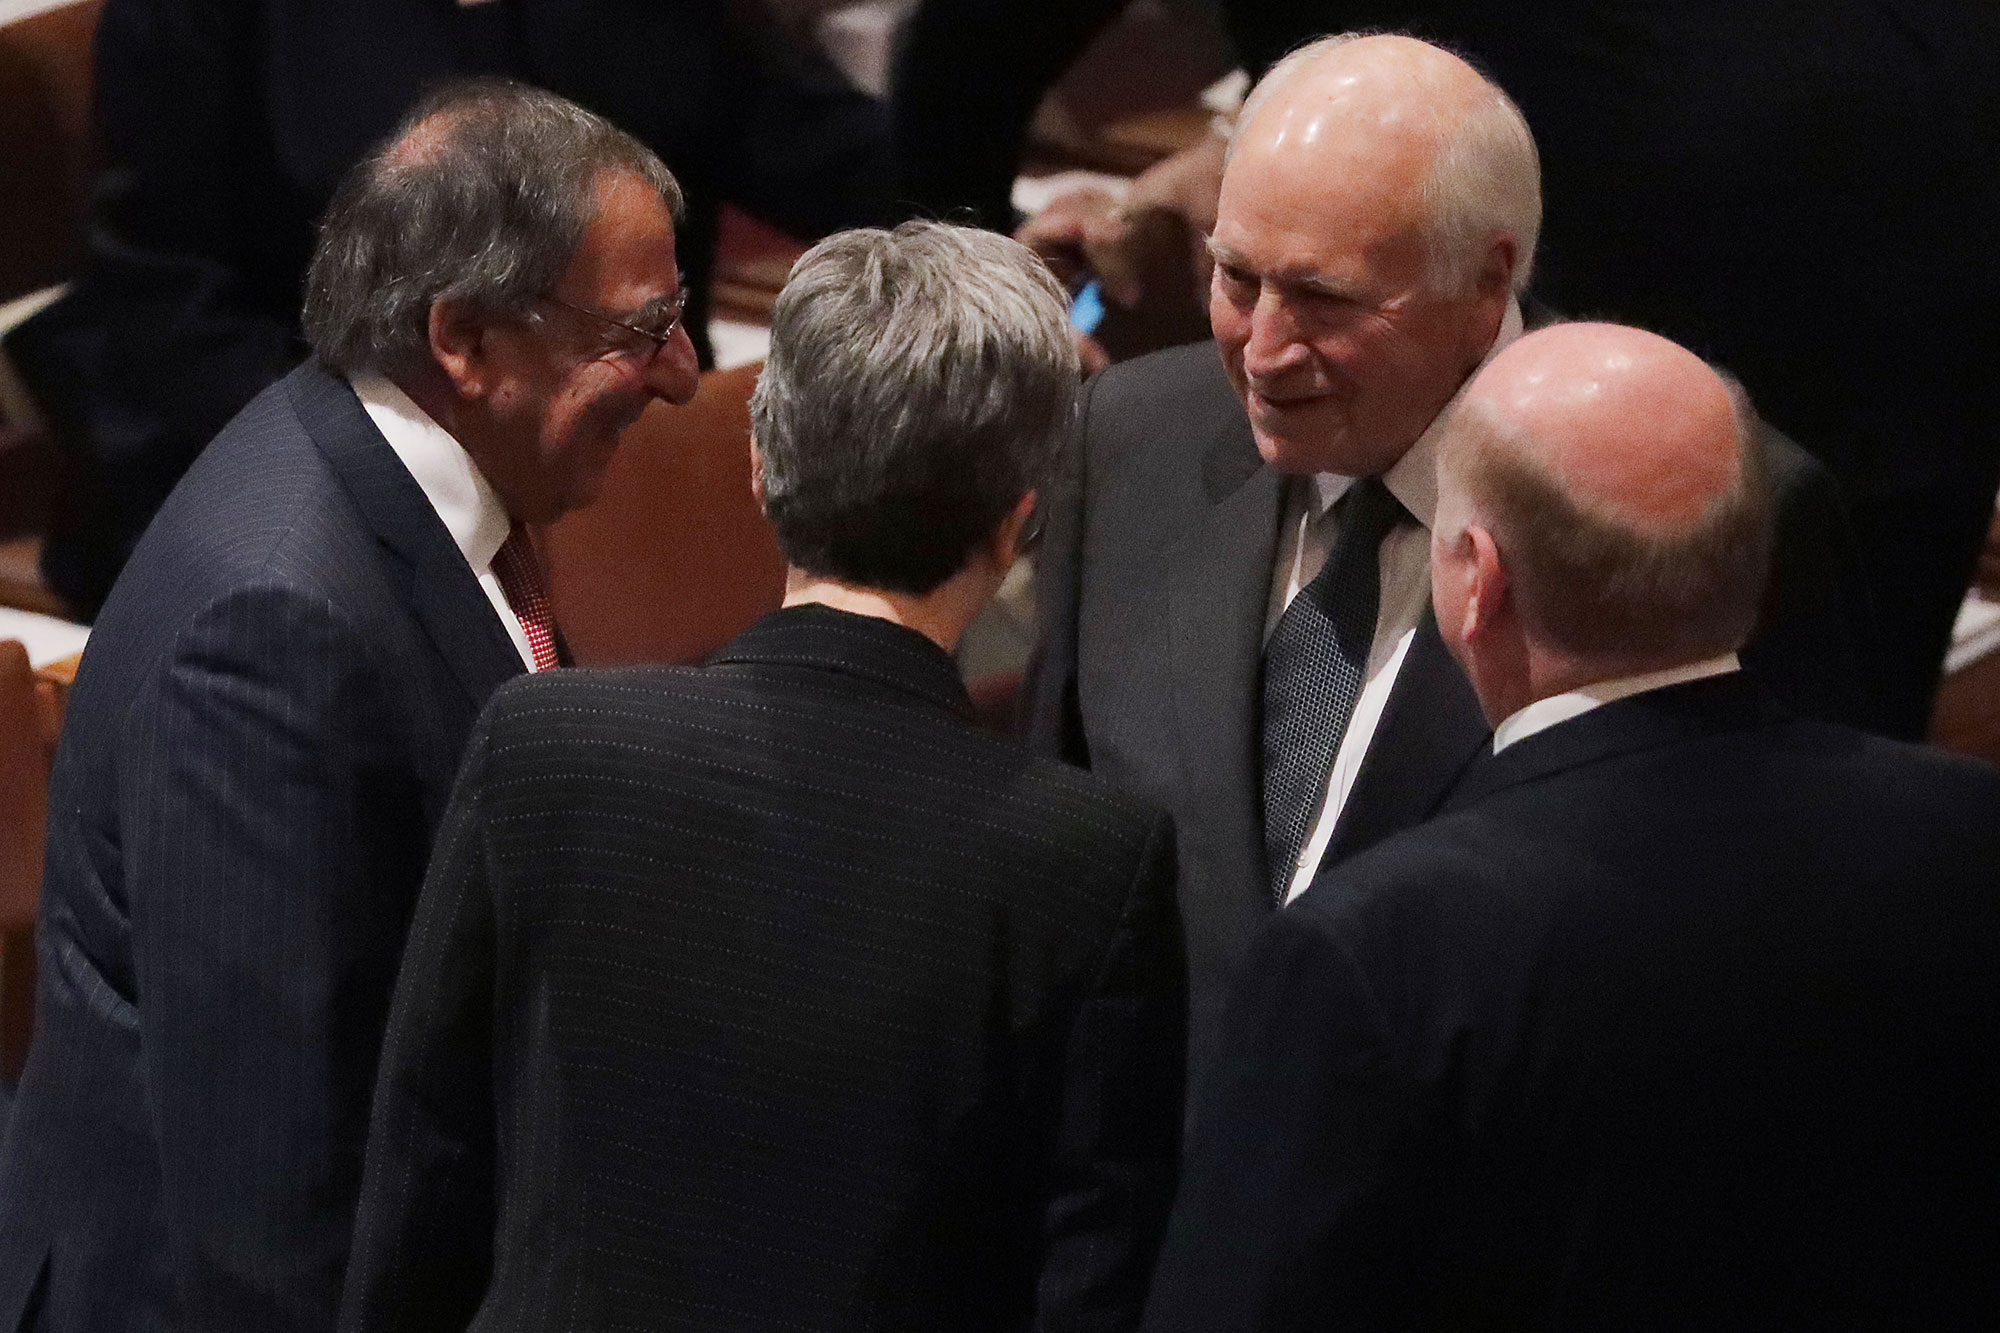 george bush funeral - The former vice president chatted with former Defense Secretary and CIA director Leon Panetta before the service began.